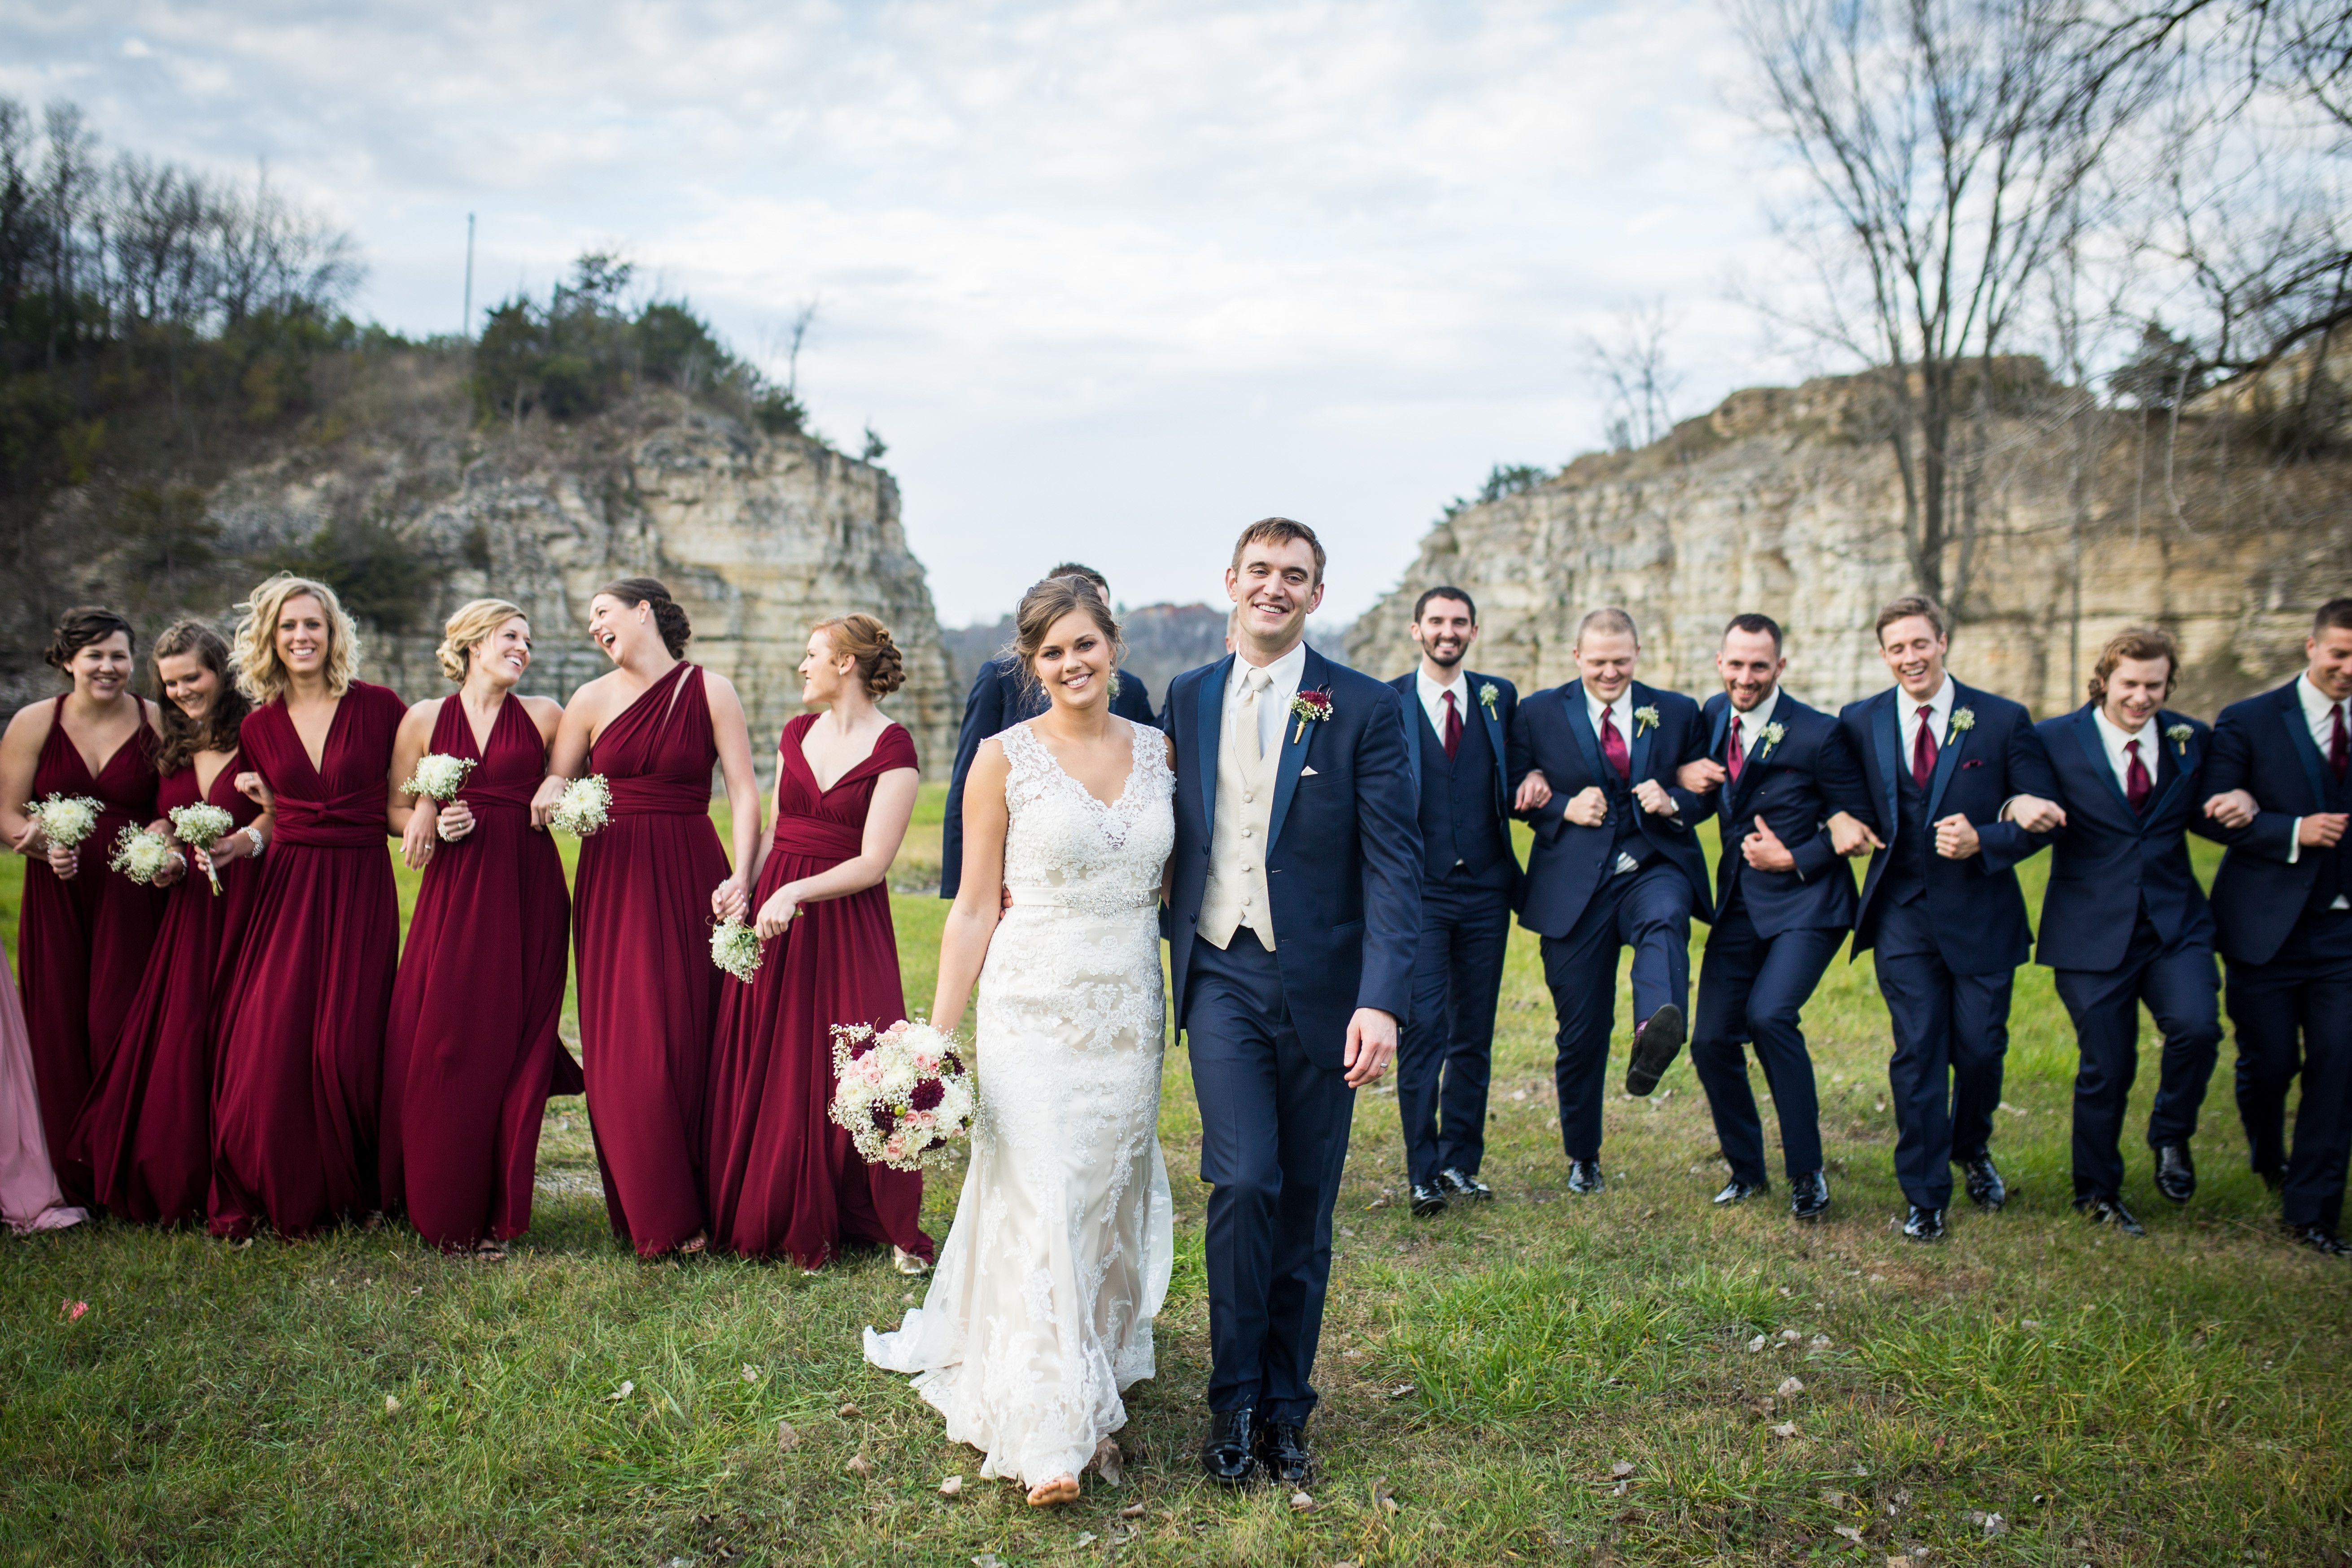 Fall outdoor wedding dresses  Fall bridal party outdoor wedding photos Burgundy pink bridesmaid